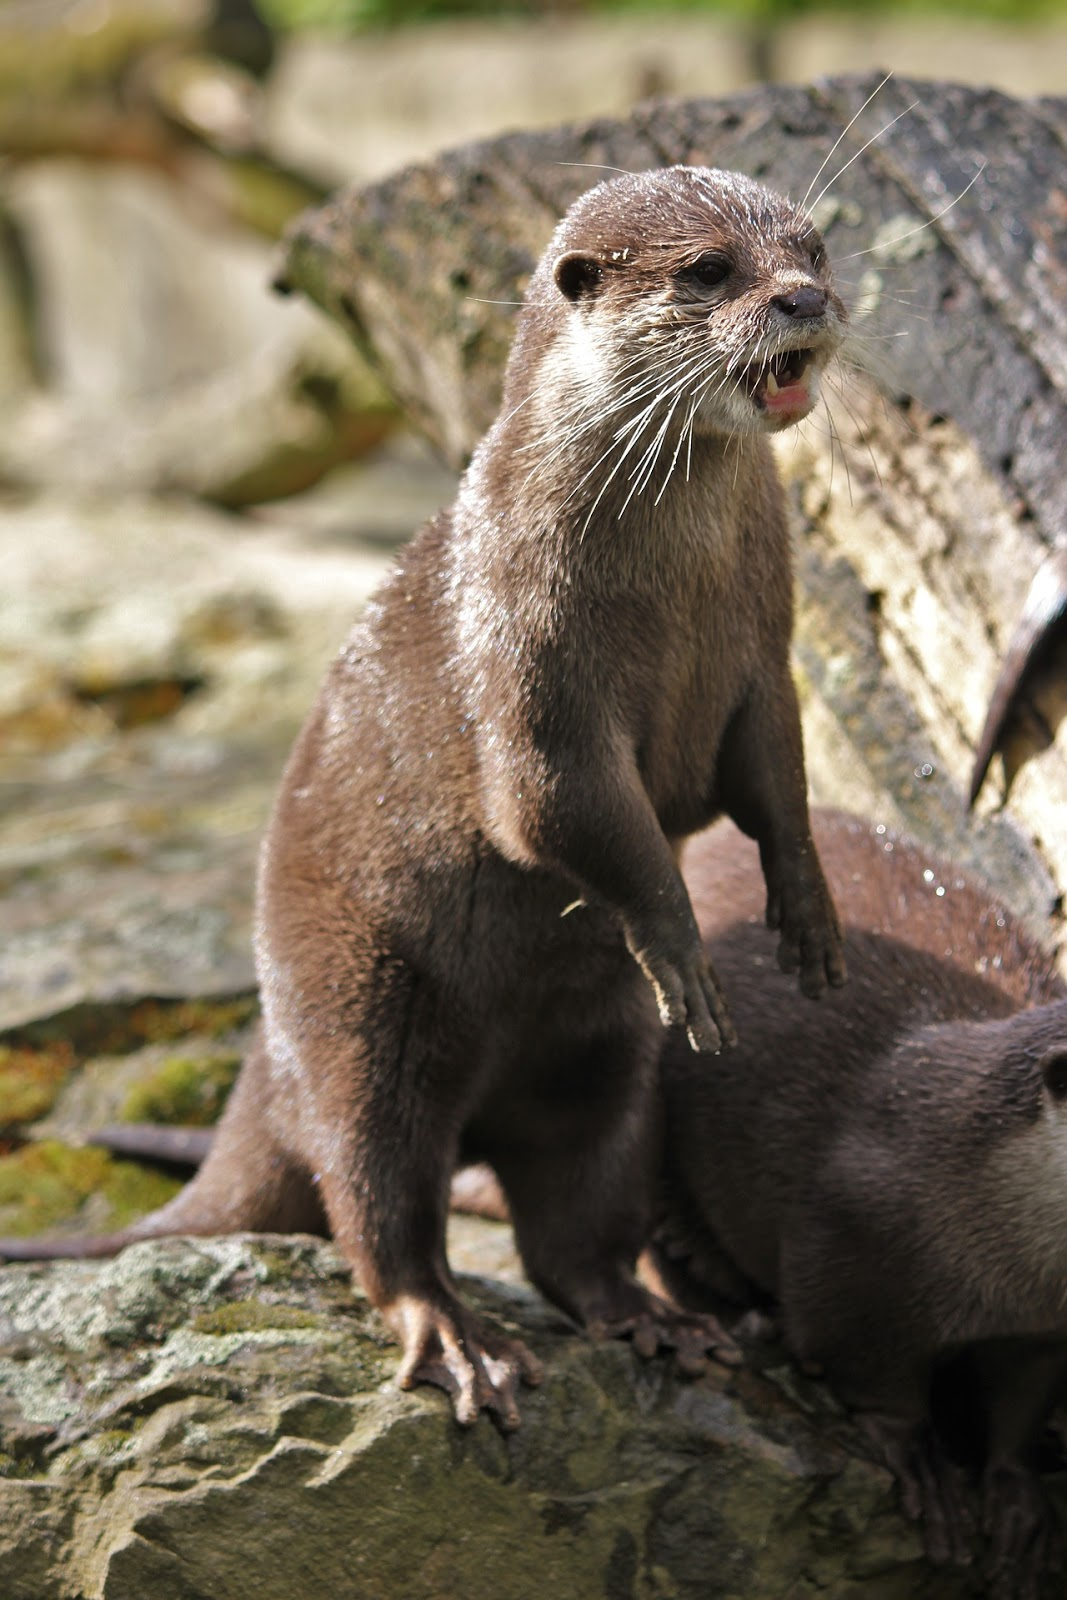 Picture of an expressive otter.